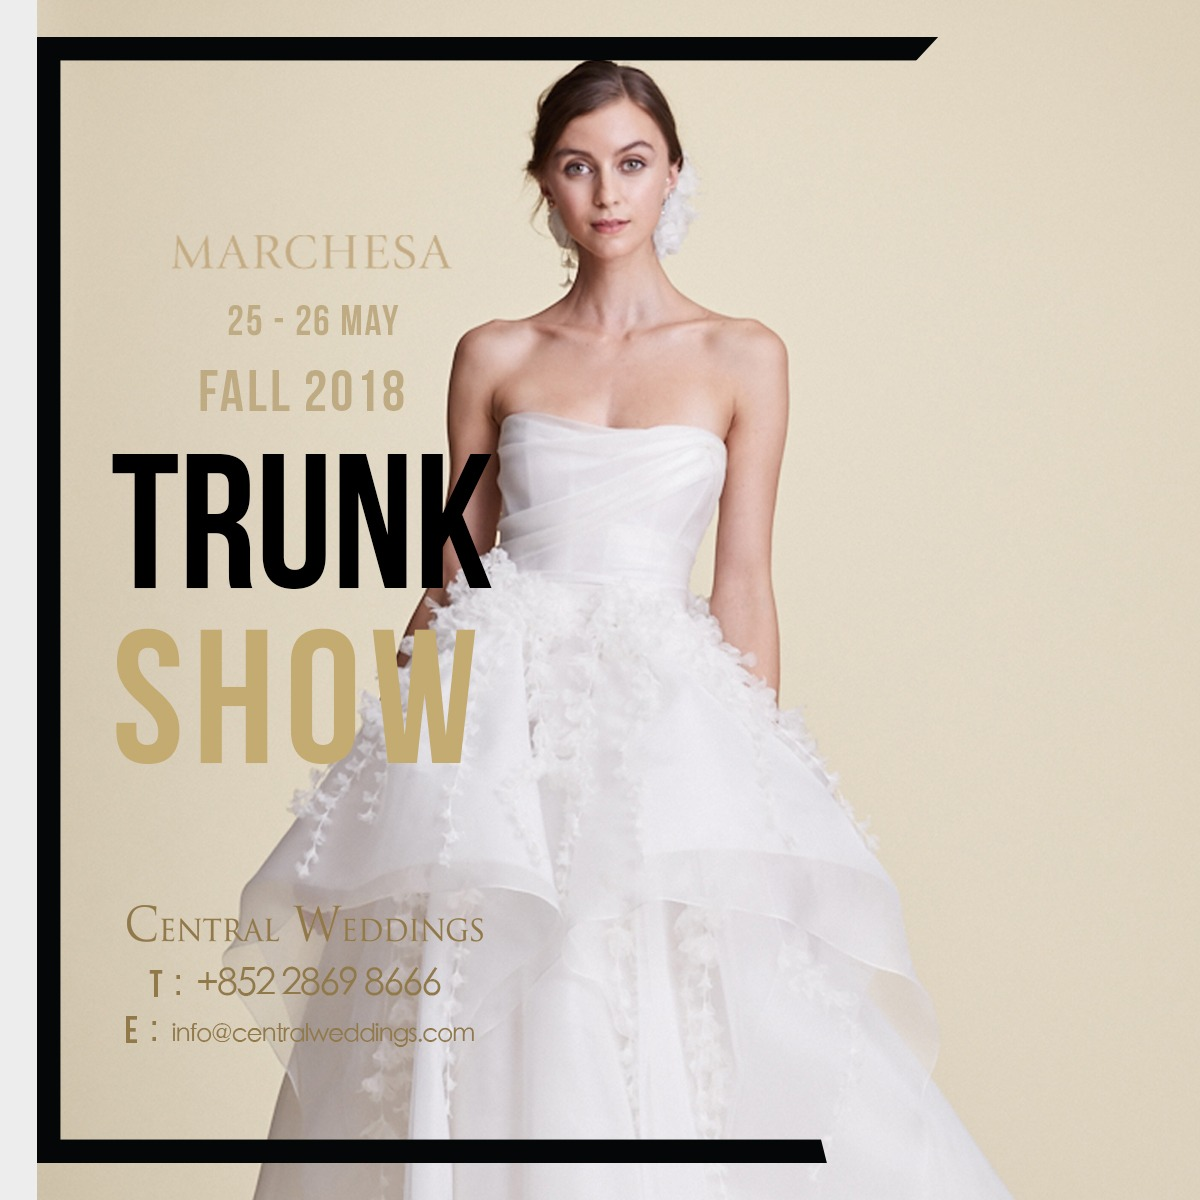 marchesa-bridal-trunk-show-fall-2018-central-weddings